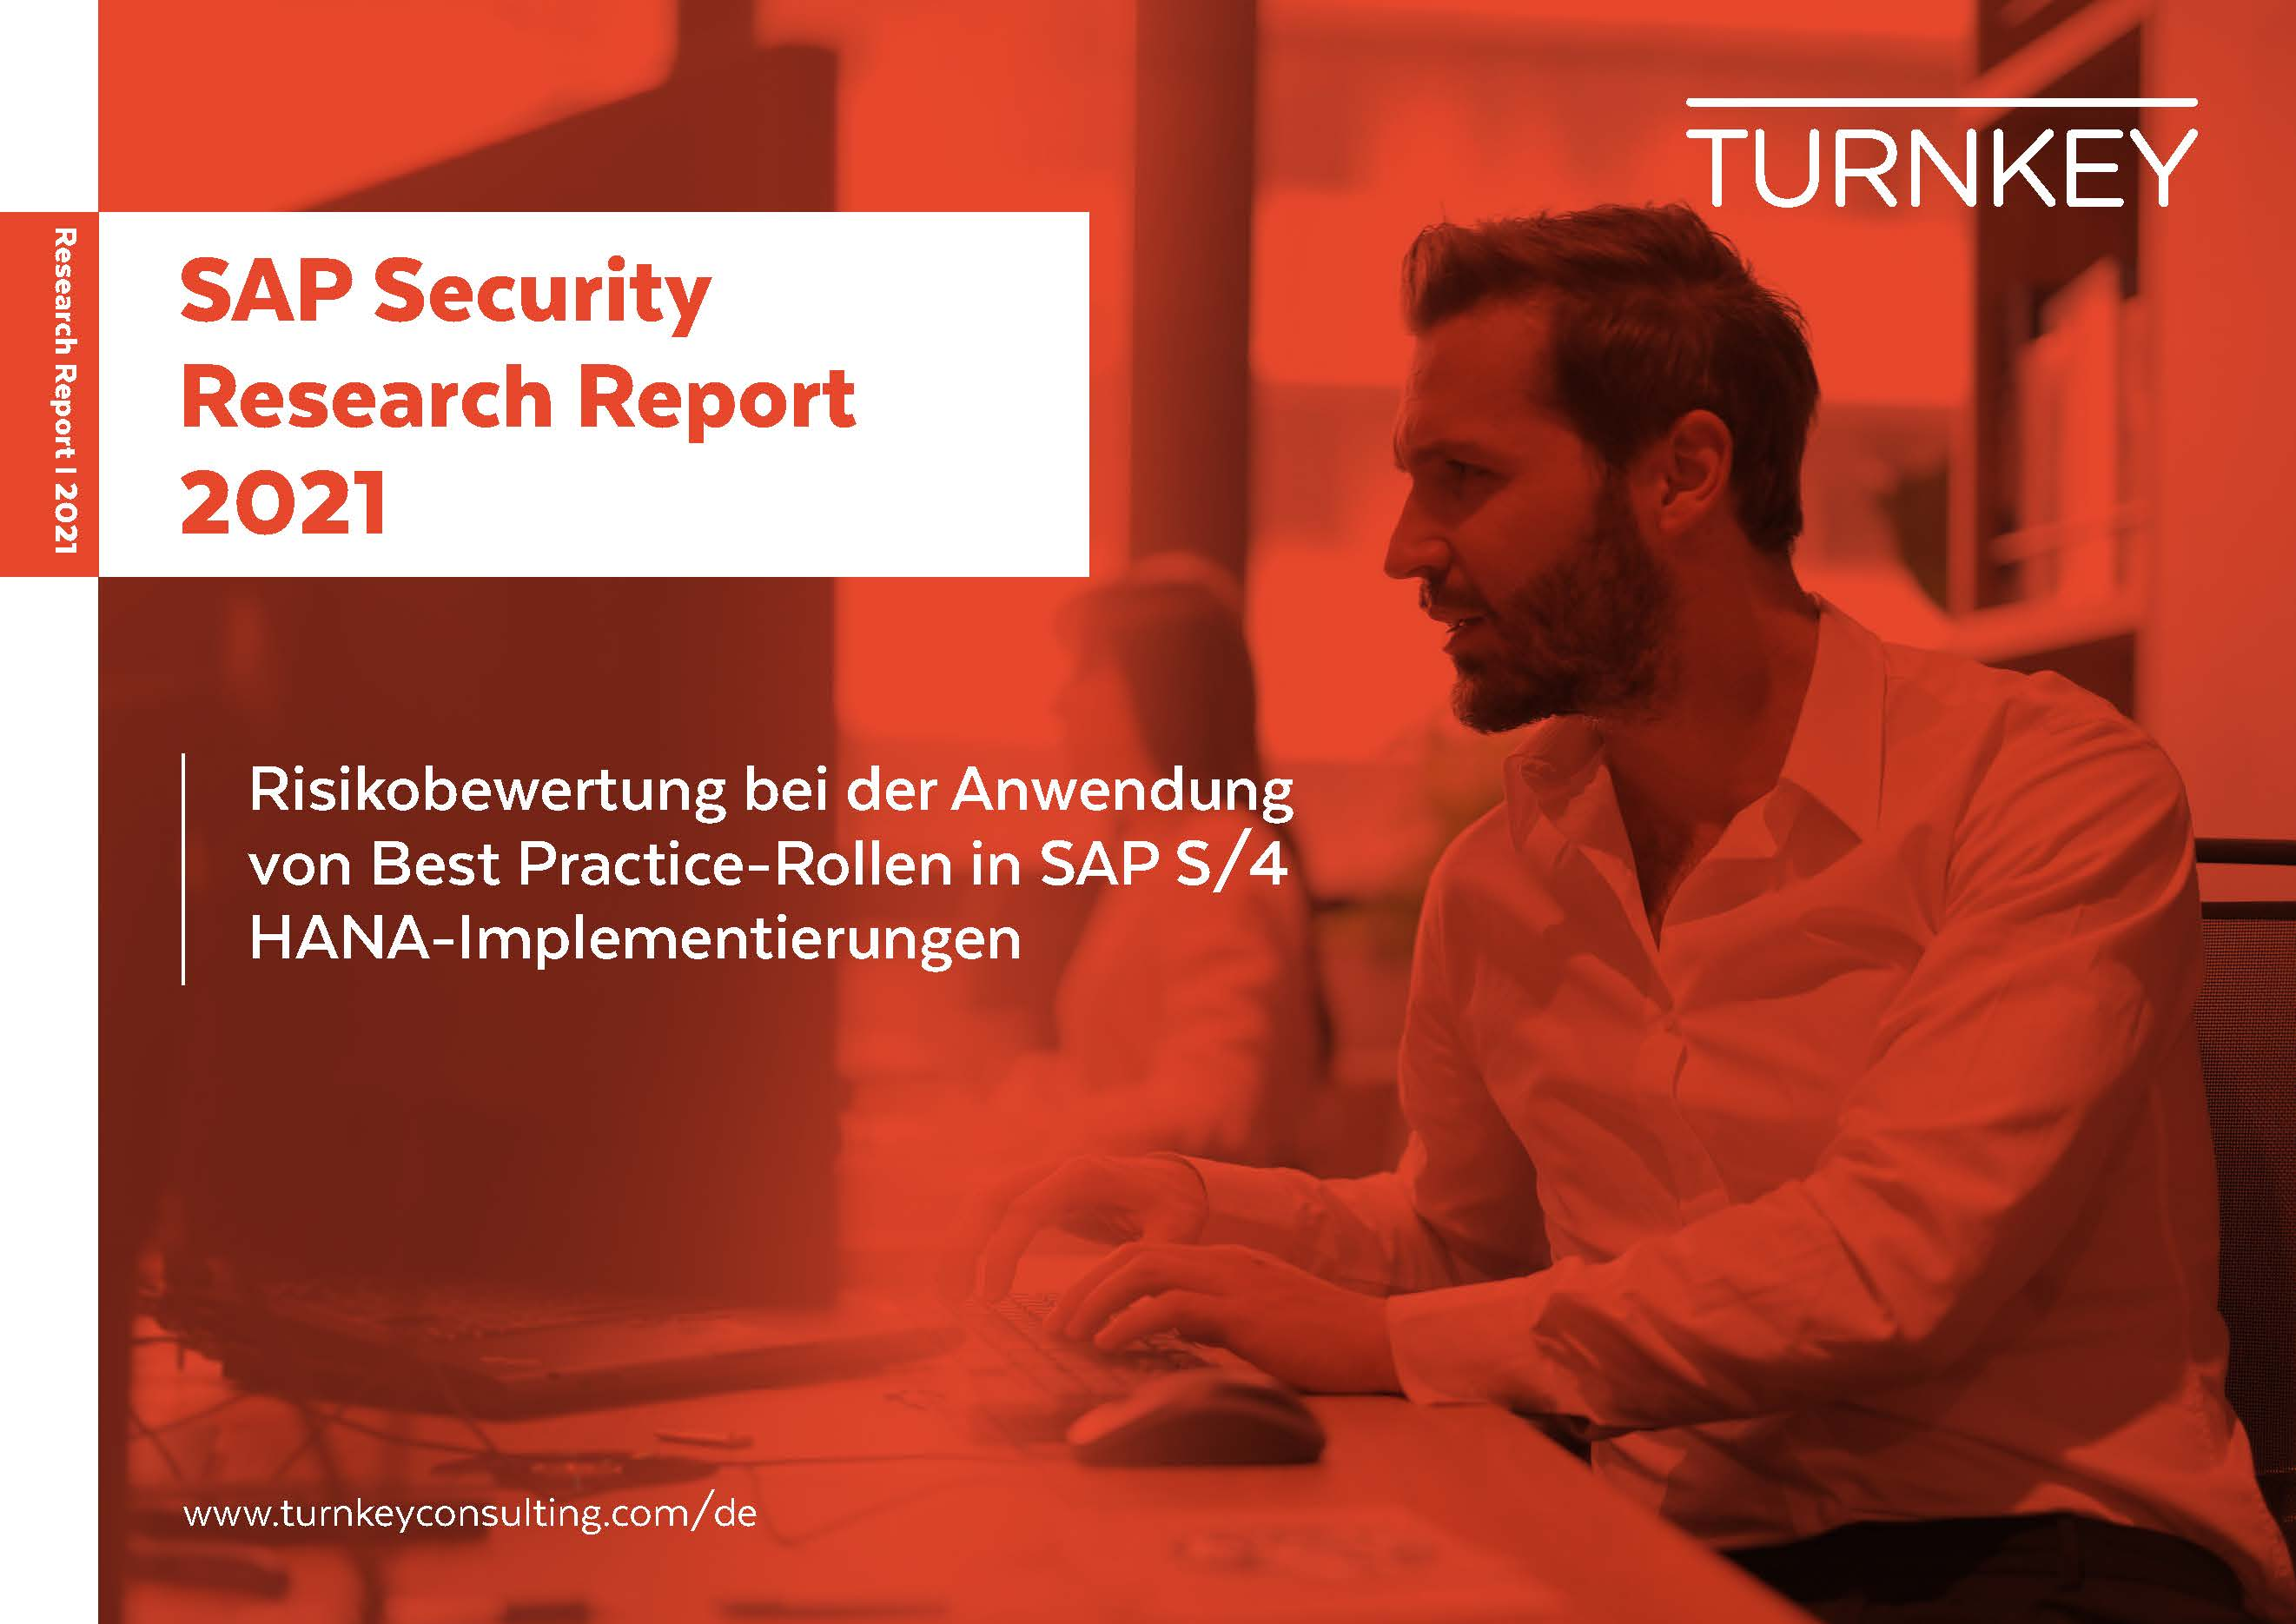 TKSAP S_4 HANA Security- Assessing the risk of best practice roles 17-1-21 German Version_Page_01